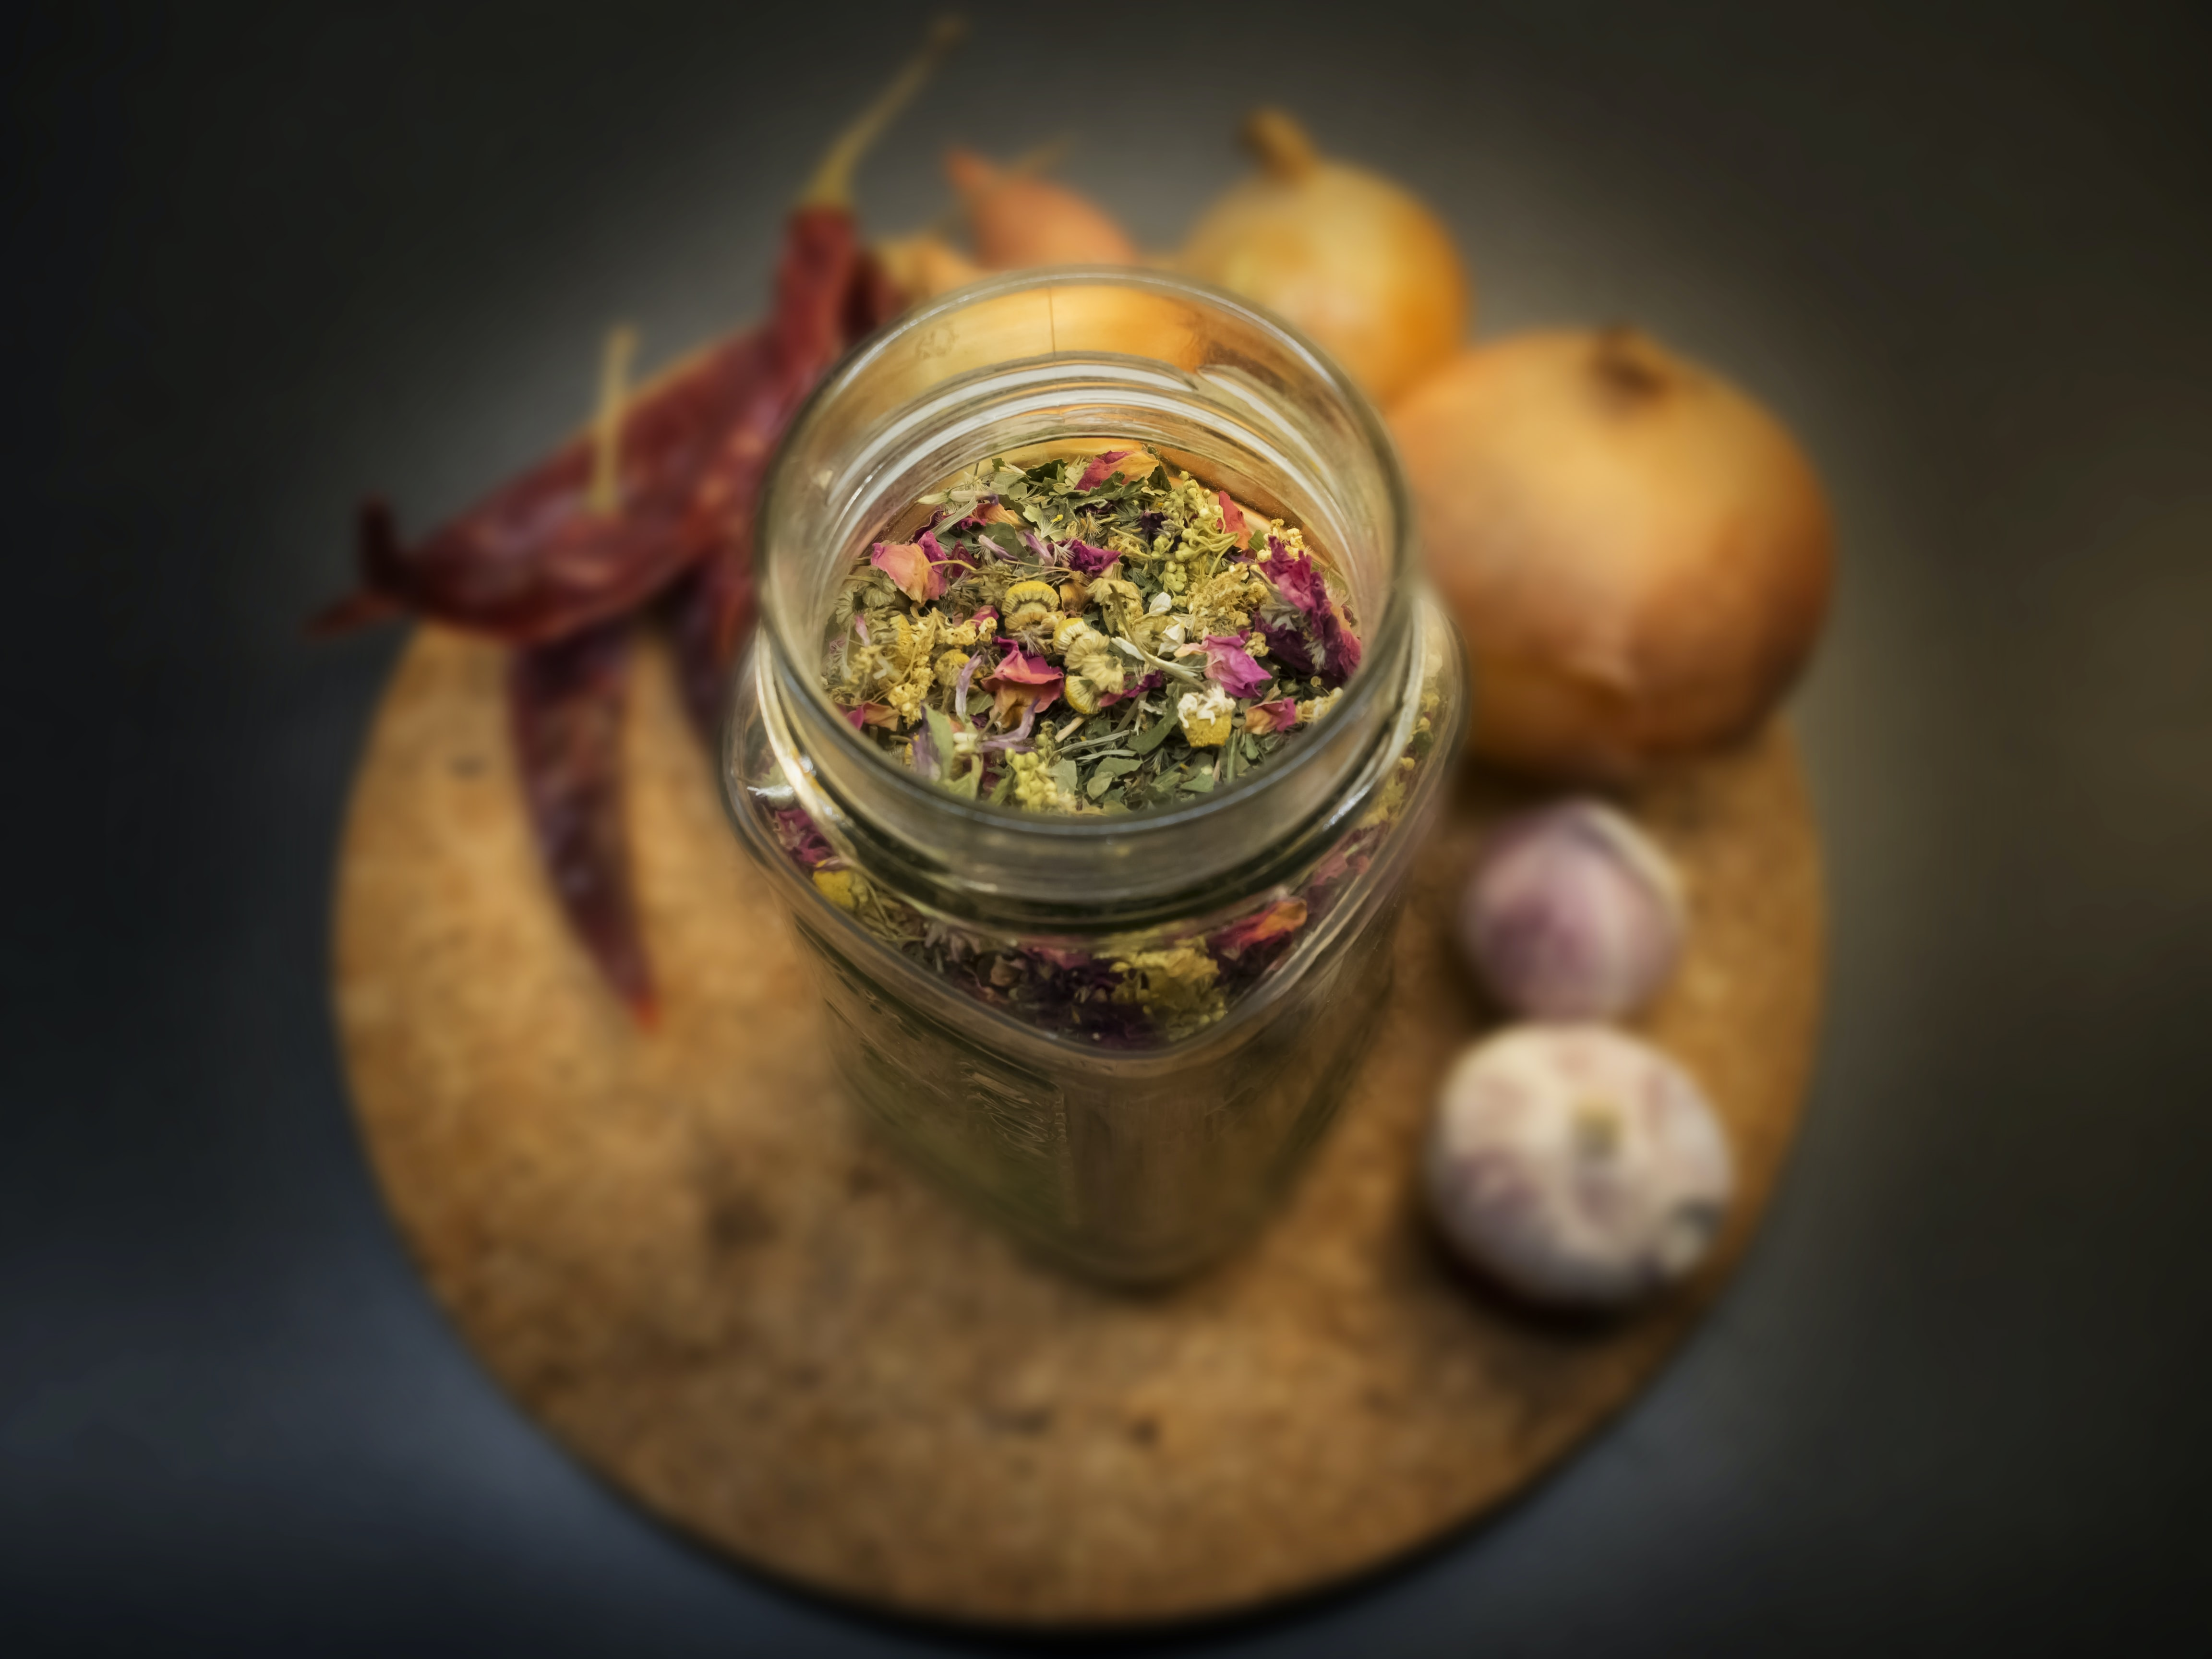 clear glass jar filled with spices